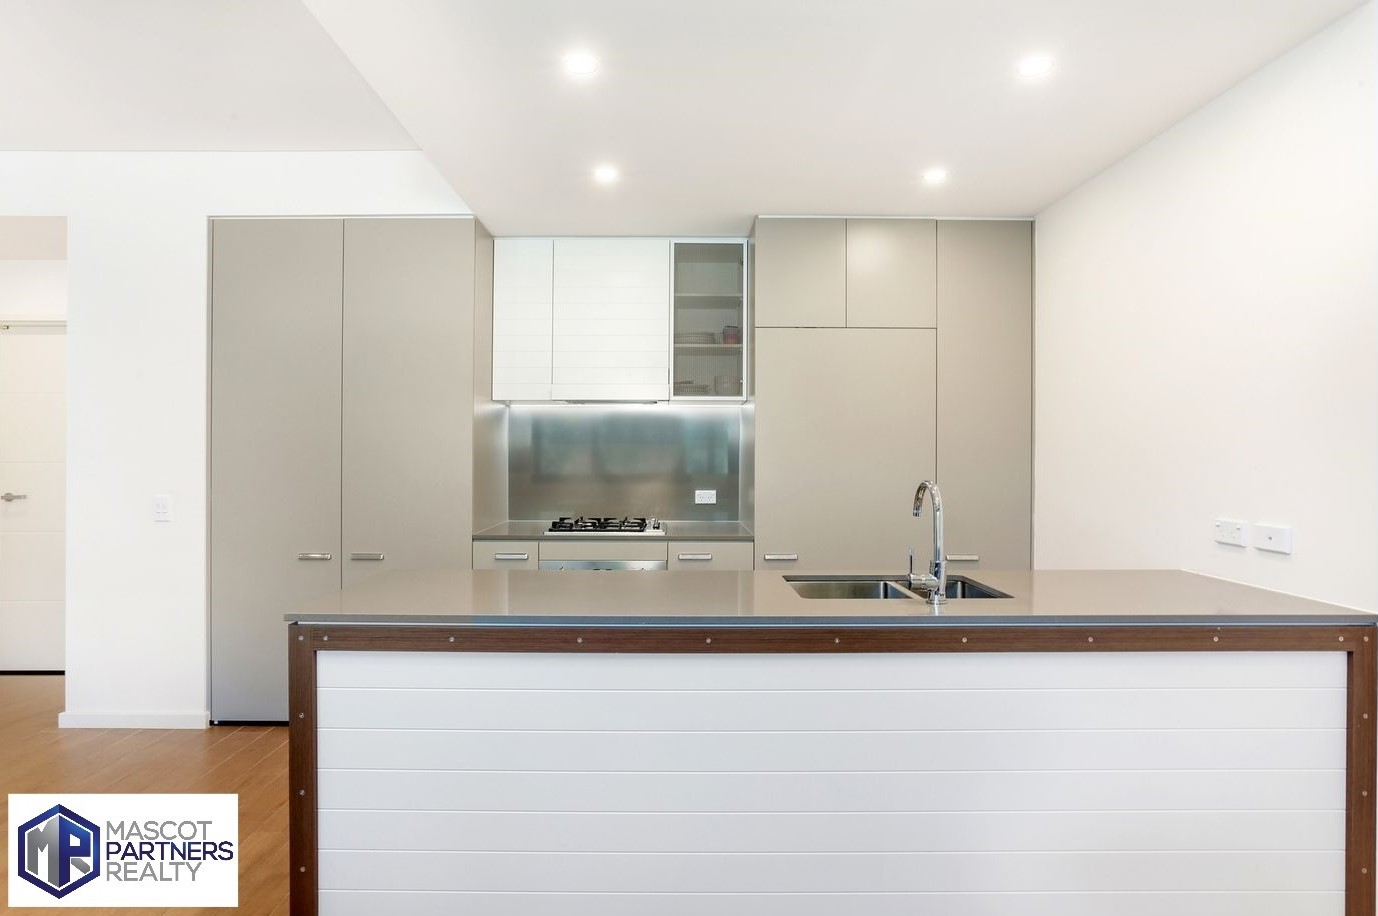 223/68 River Road, Ermington NSW 2115 (LEASED)